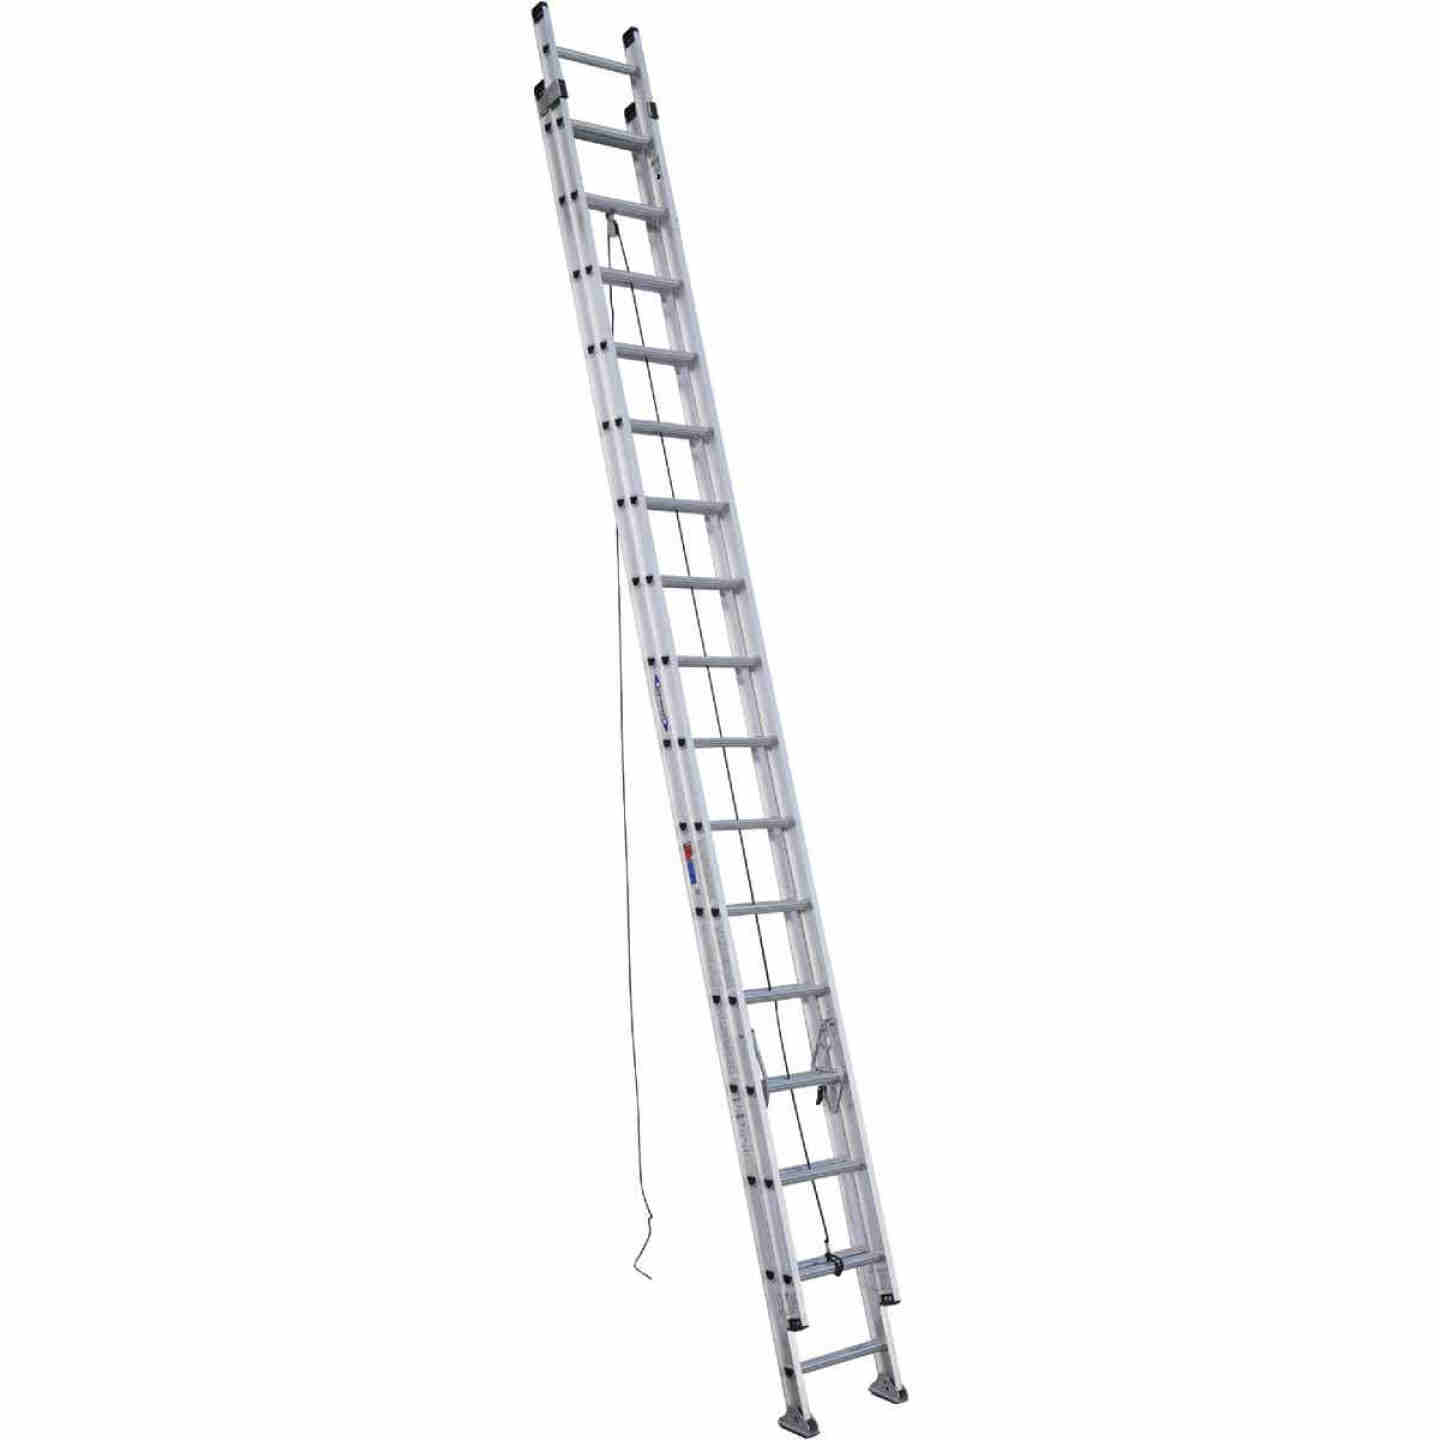 Werner 32 Ft. Aluminum Extension Ladder with 300 Lb. Load Capacity Type IA Duty Rating Image 1